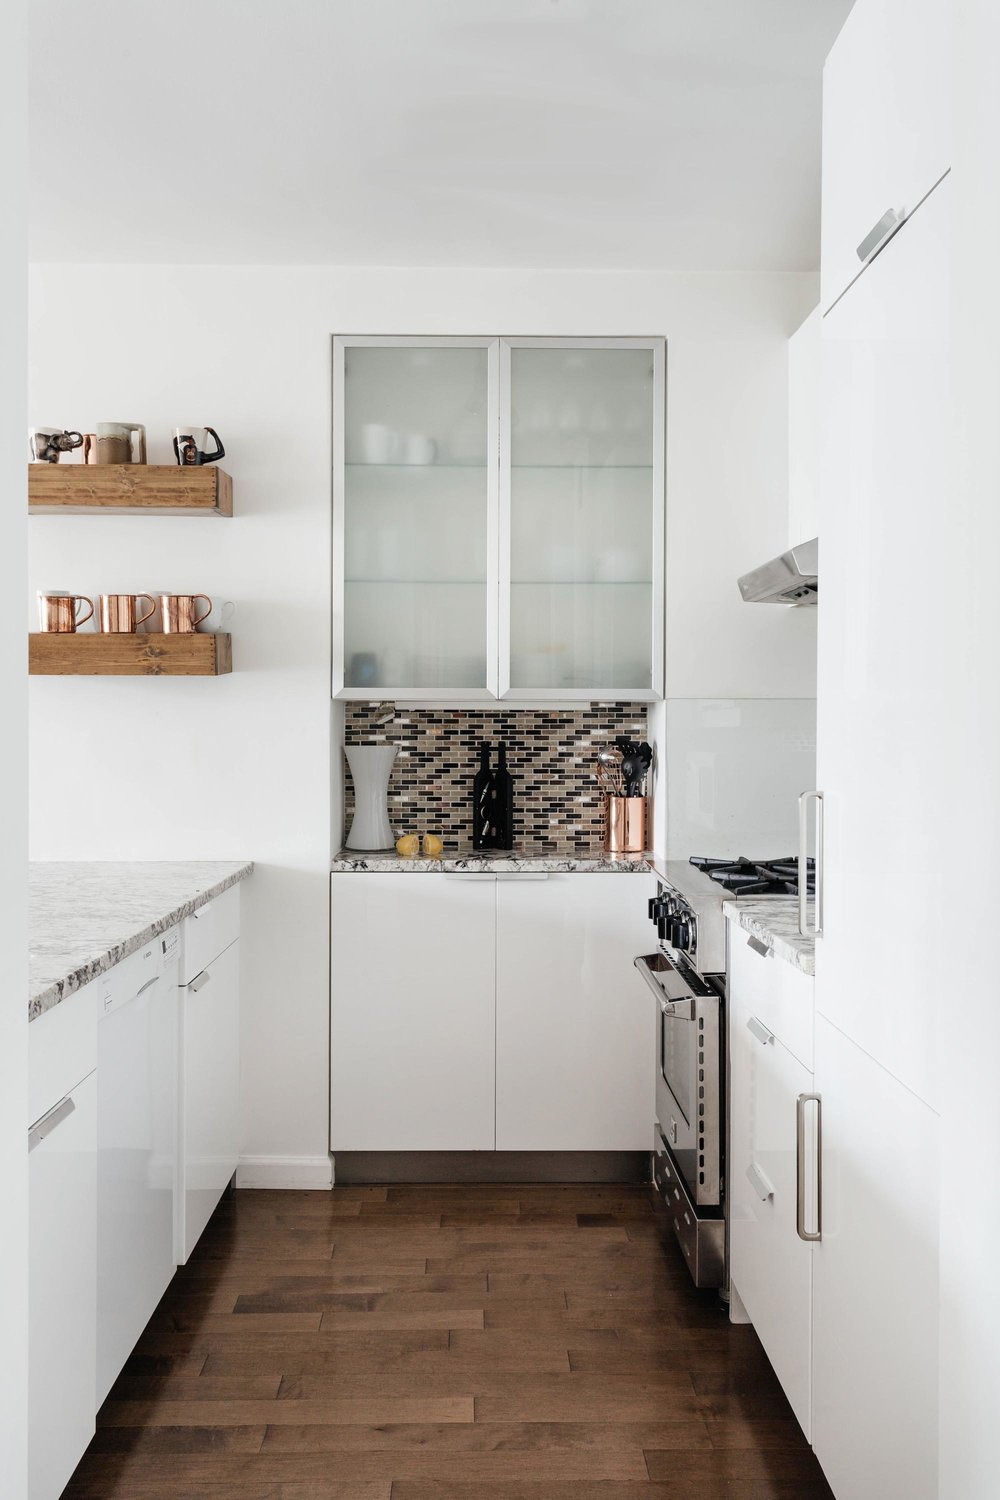 Small kitchen with tile backsplash